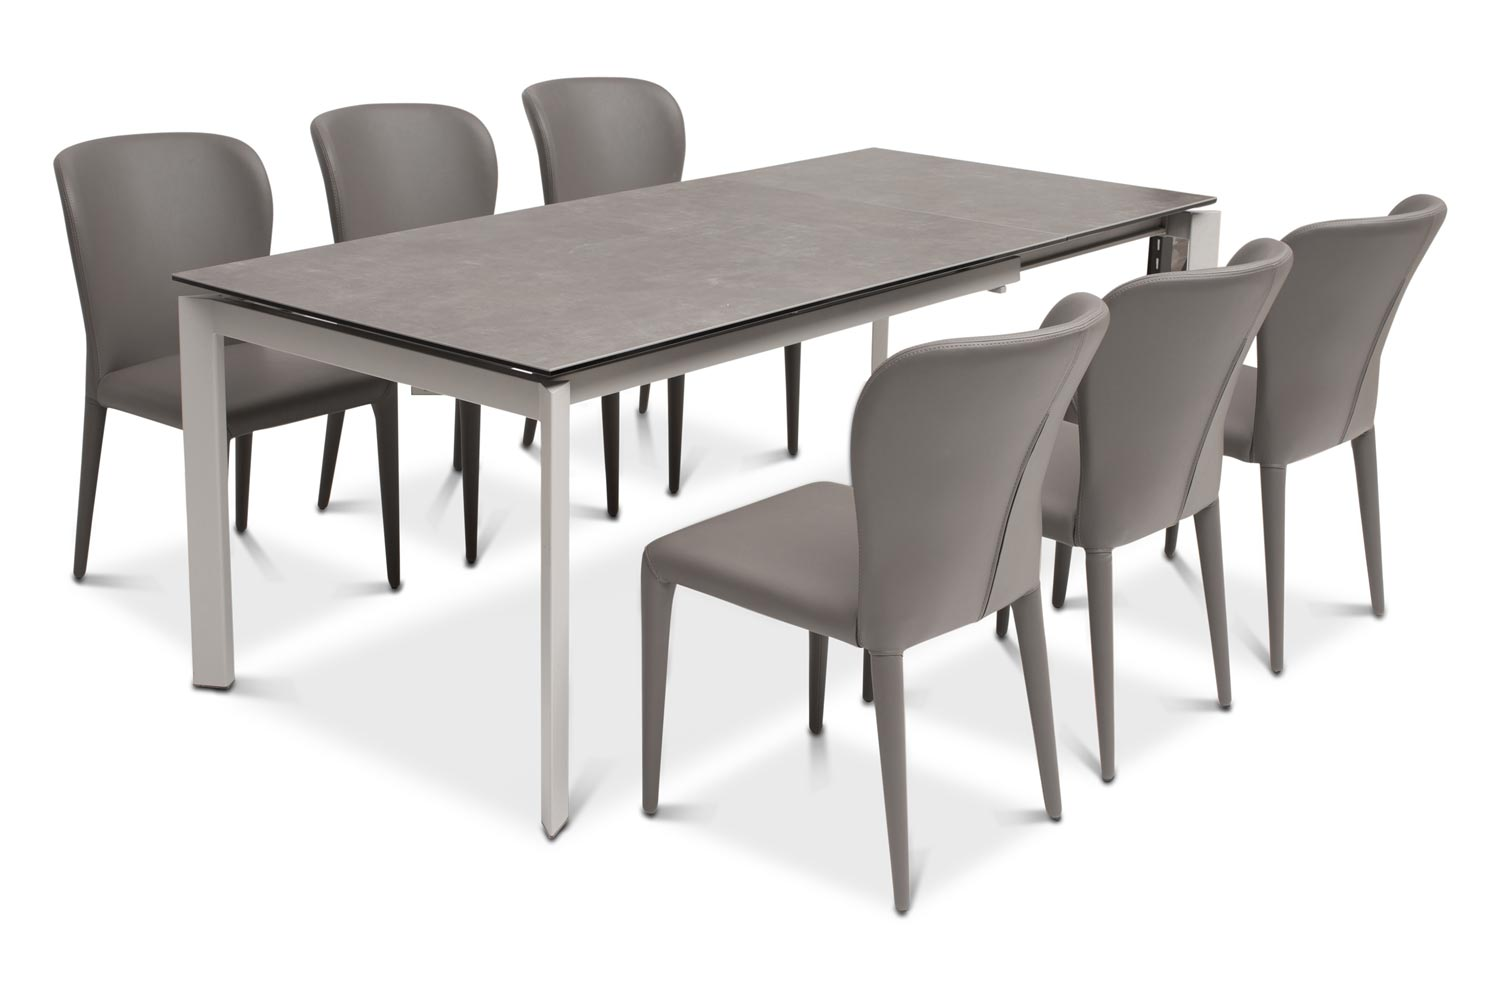 Black Dining Room Table And Chairs Callisto Dining Table Dark With 6 Aletta Chairs Dark Grey